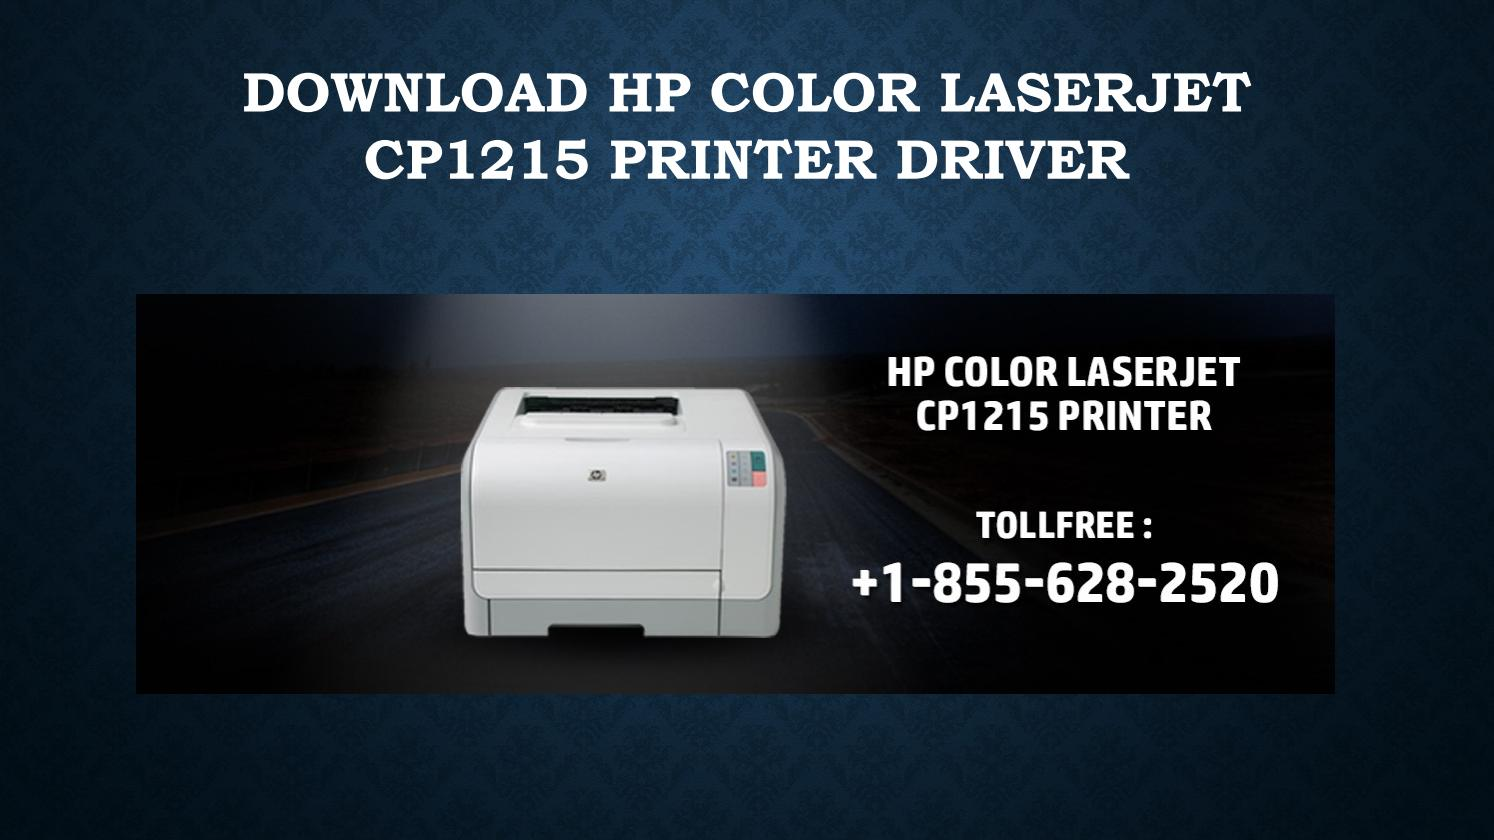 CP1215 NETWORK PRINTER DRIVERS FOR WINDOWS XP